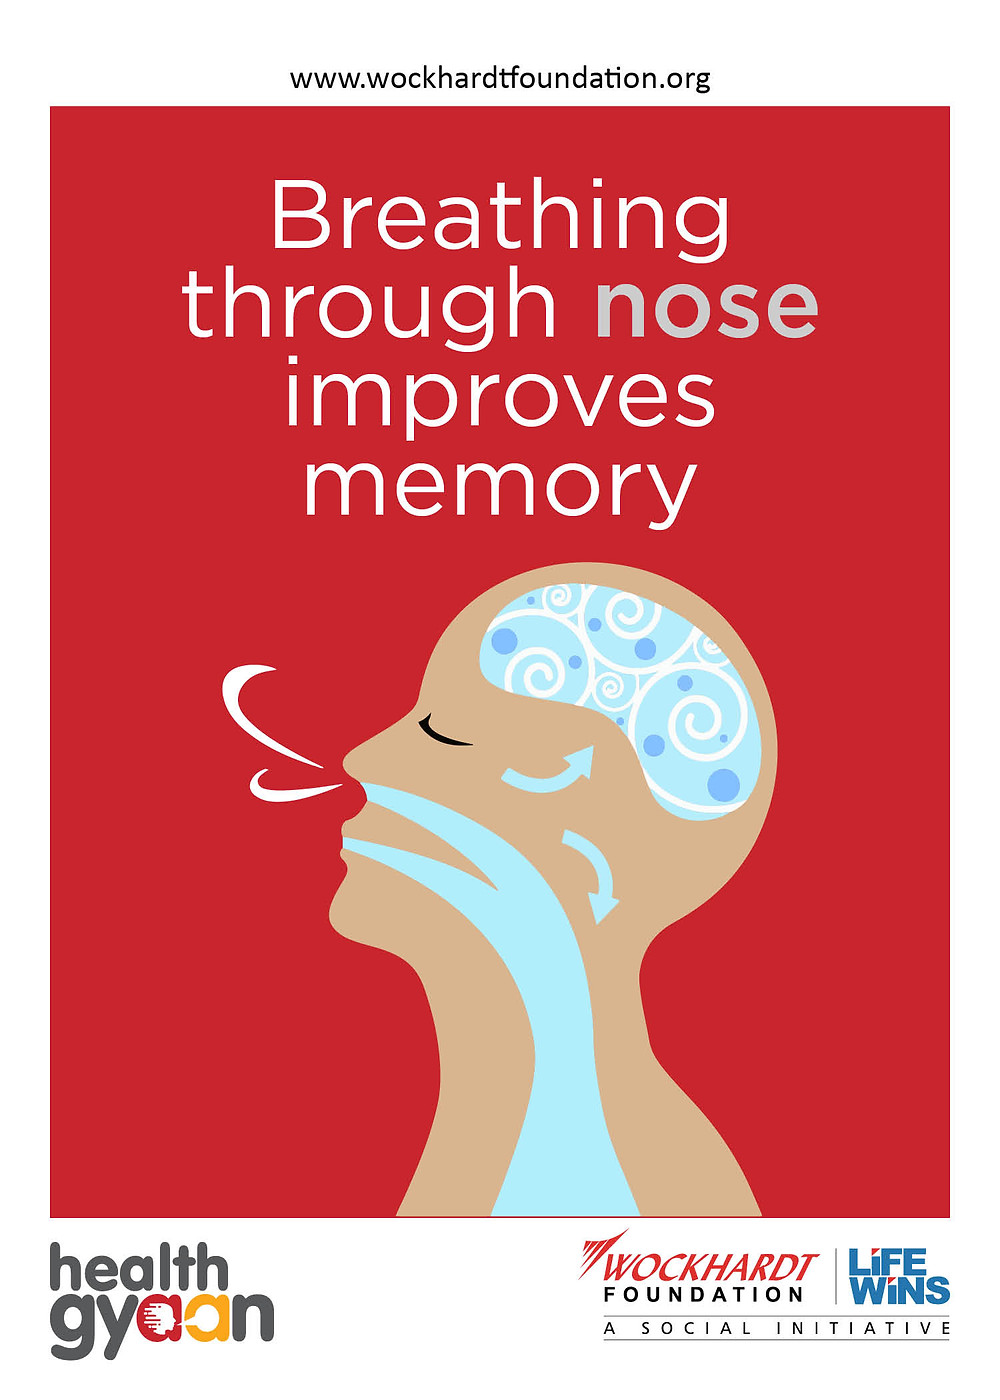 Nose breathing improves memory